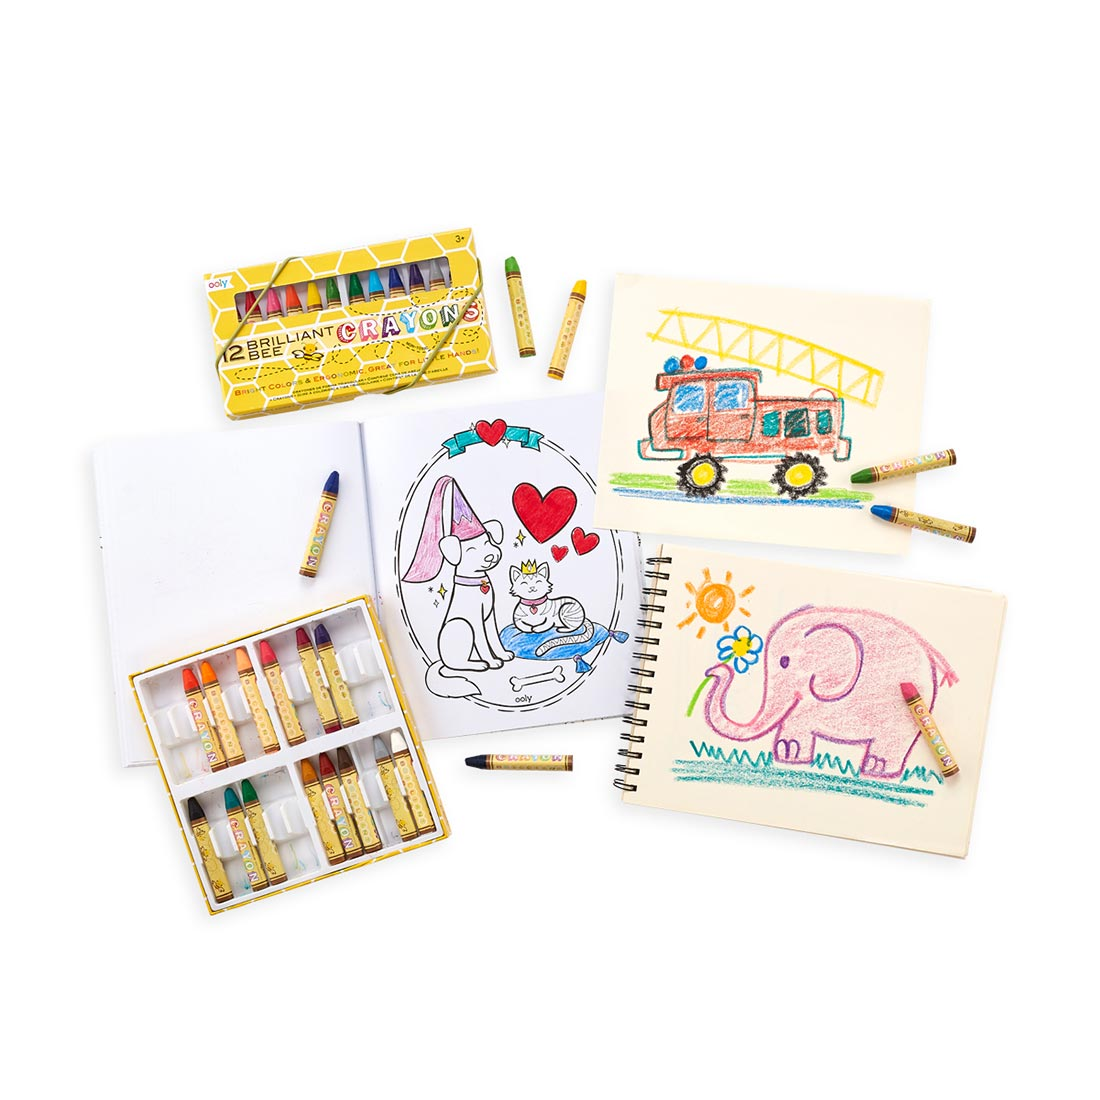 Brilliant Bee Crayon Set